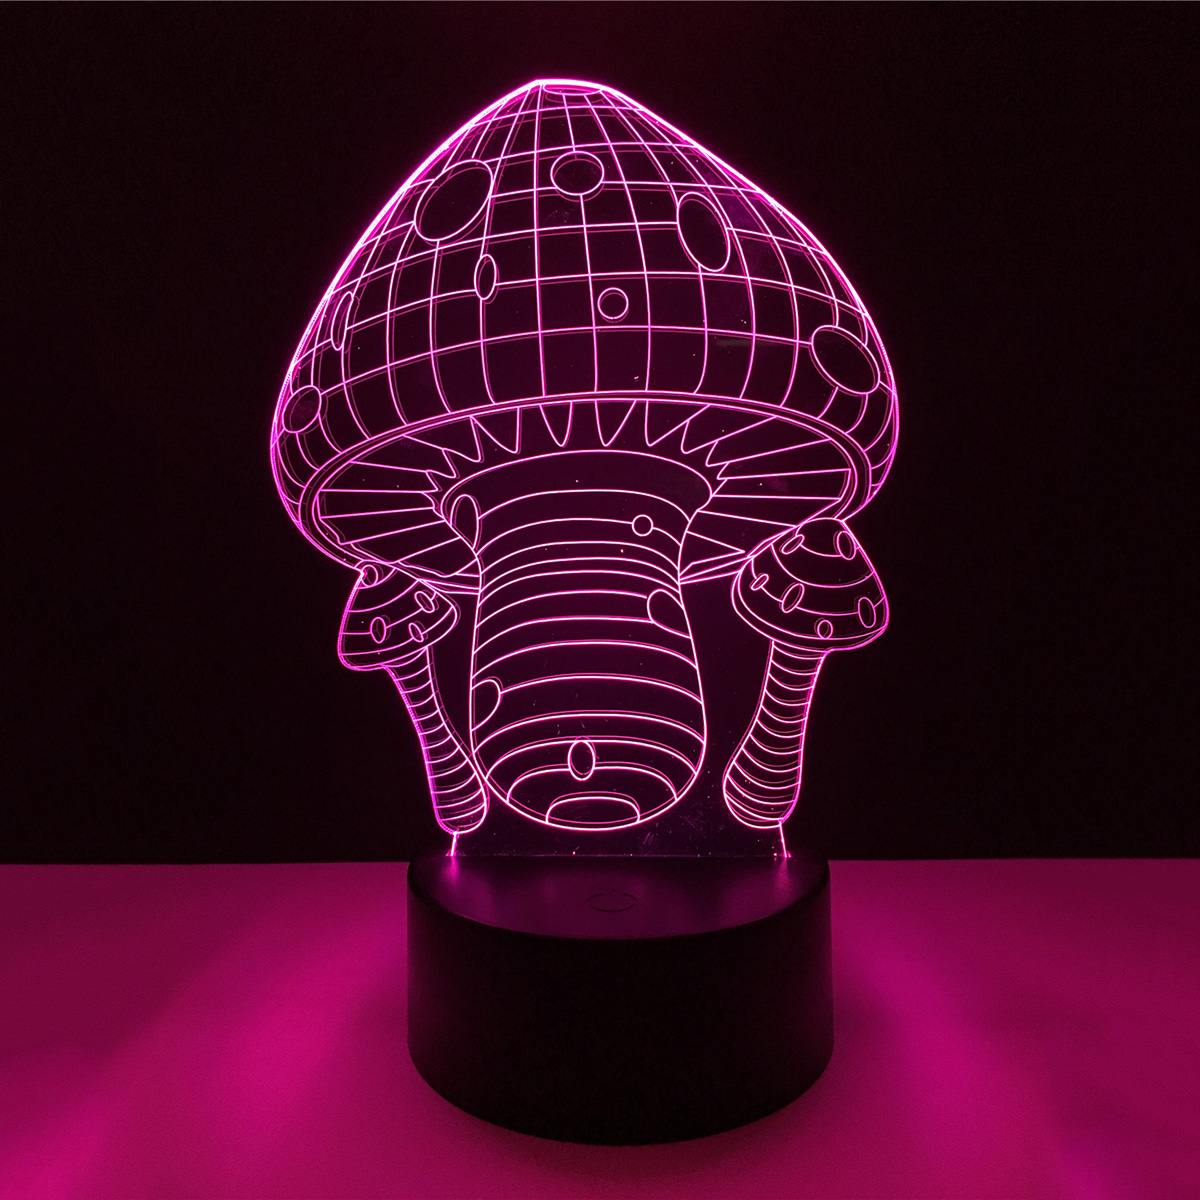 Mushroom 3D Acrylic LED Lamp 3D Baby Night Light Sleeping Lighting For Children Night Light Xmas Holiday Light P25